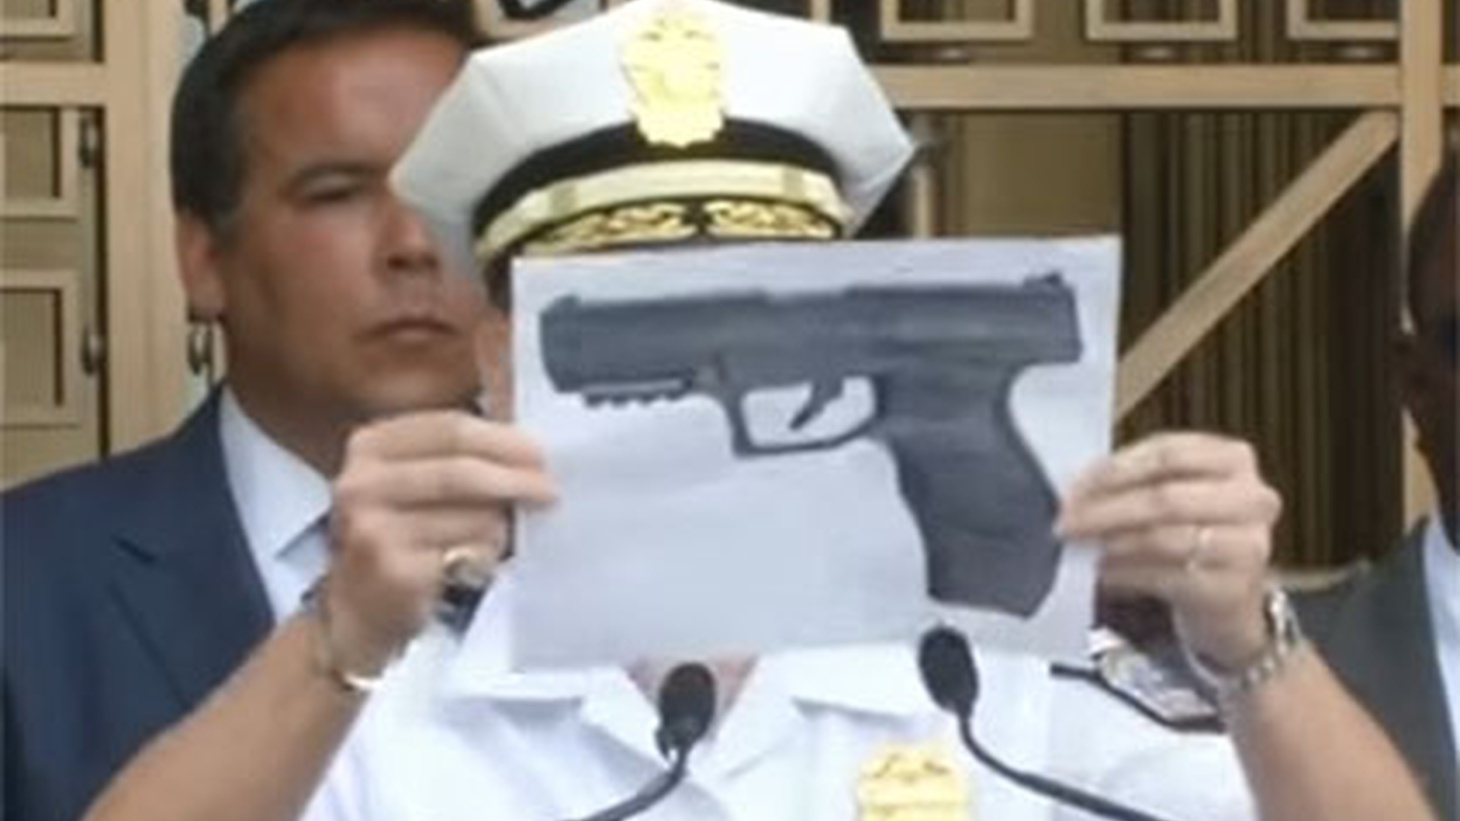 Police across the nation say that more and more they are encountering people with ultra-real looking weapons. In just two years there have been 86 deaths in police killings of people brandishing very realistic replica guns.